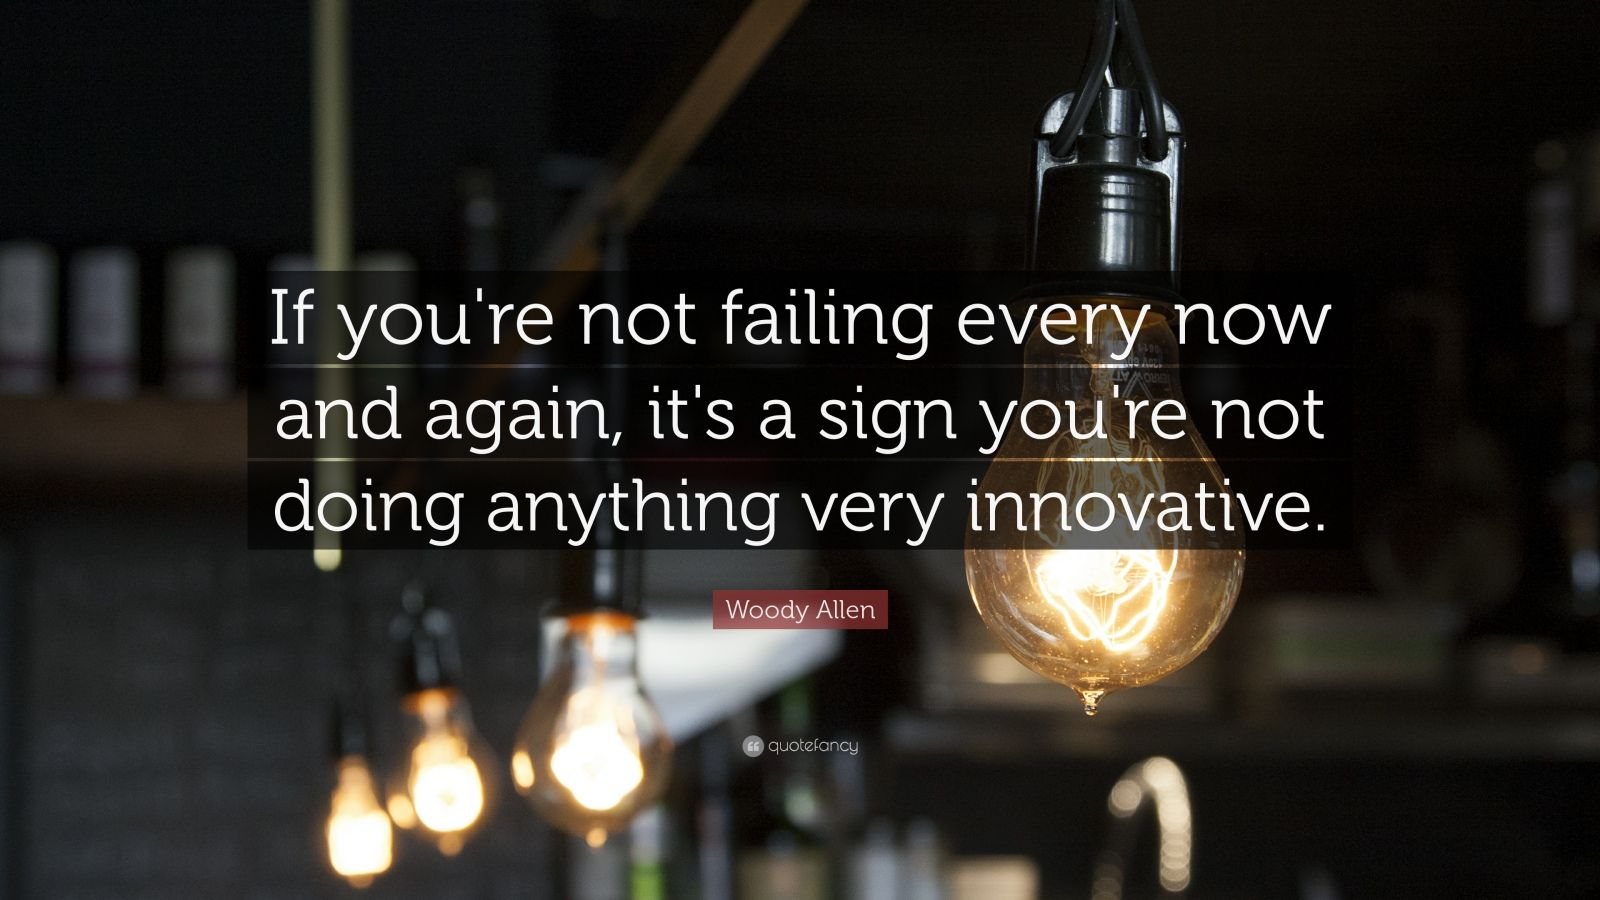 """Woody Allen Quote: """"If you're not failing every now and again, it's a sign you're not doing anything very innovative."""""""